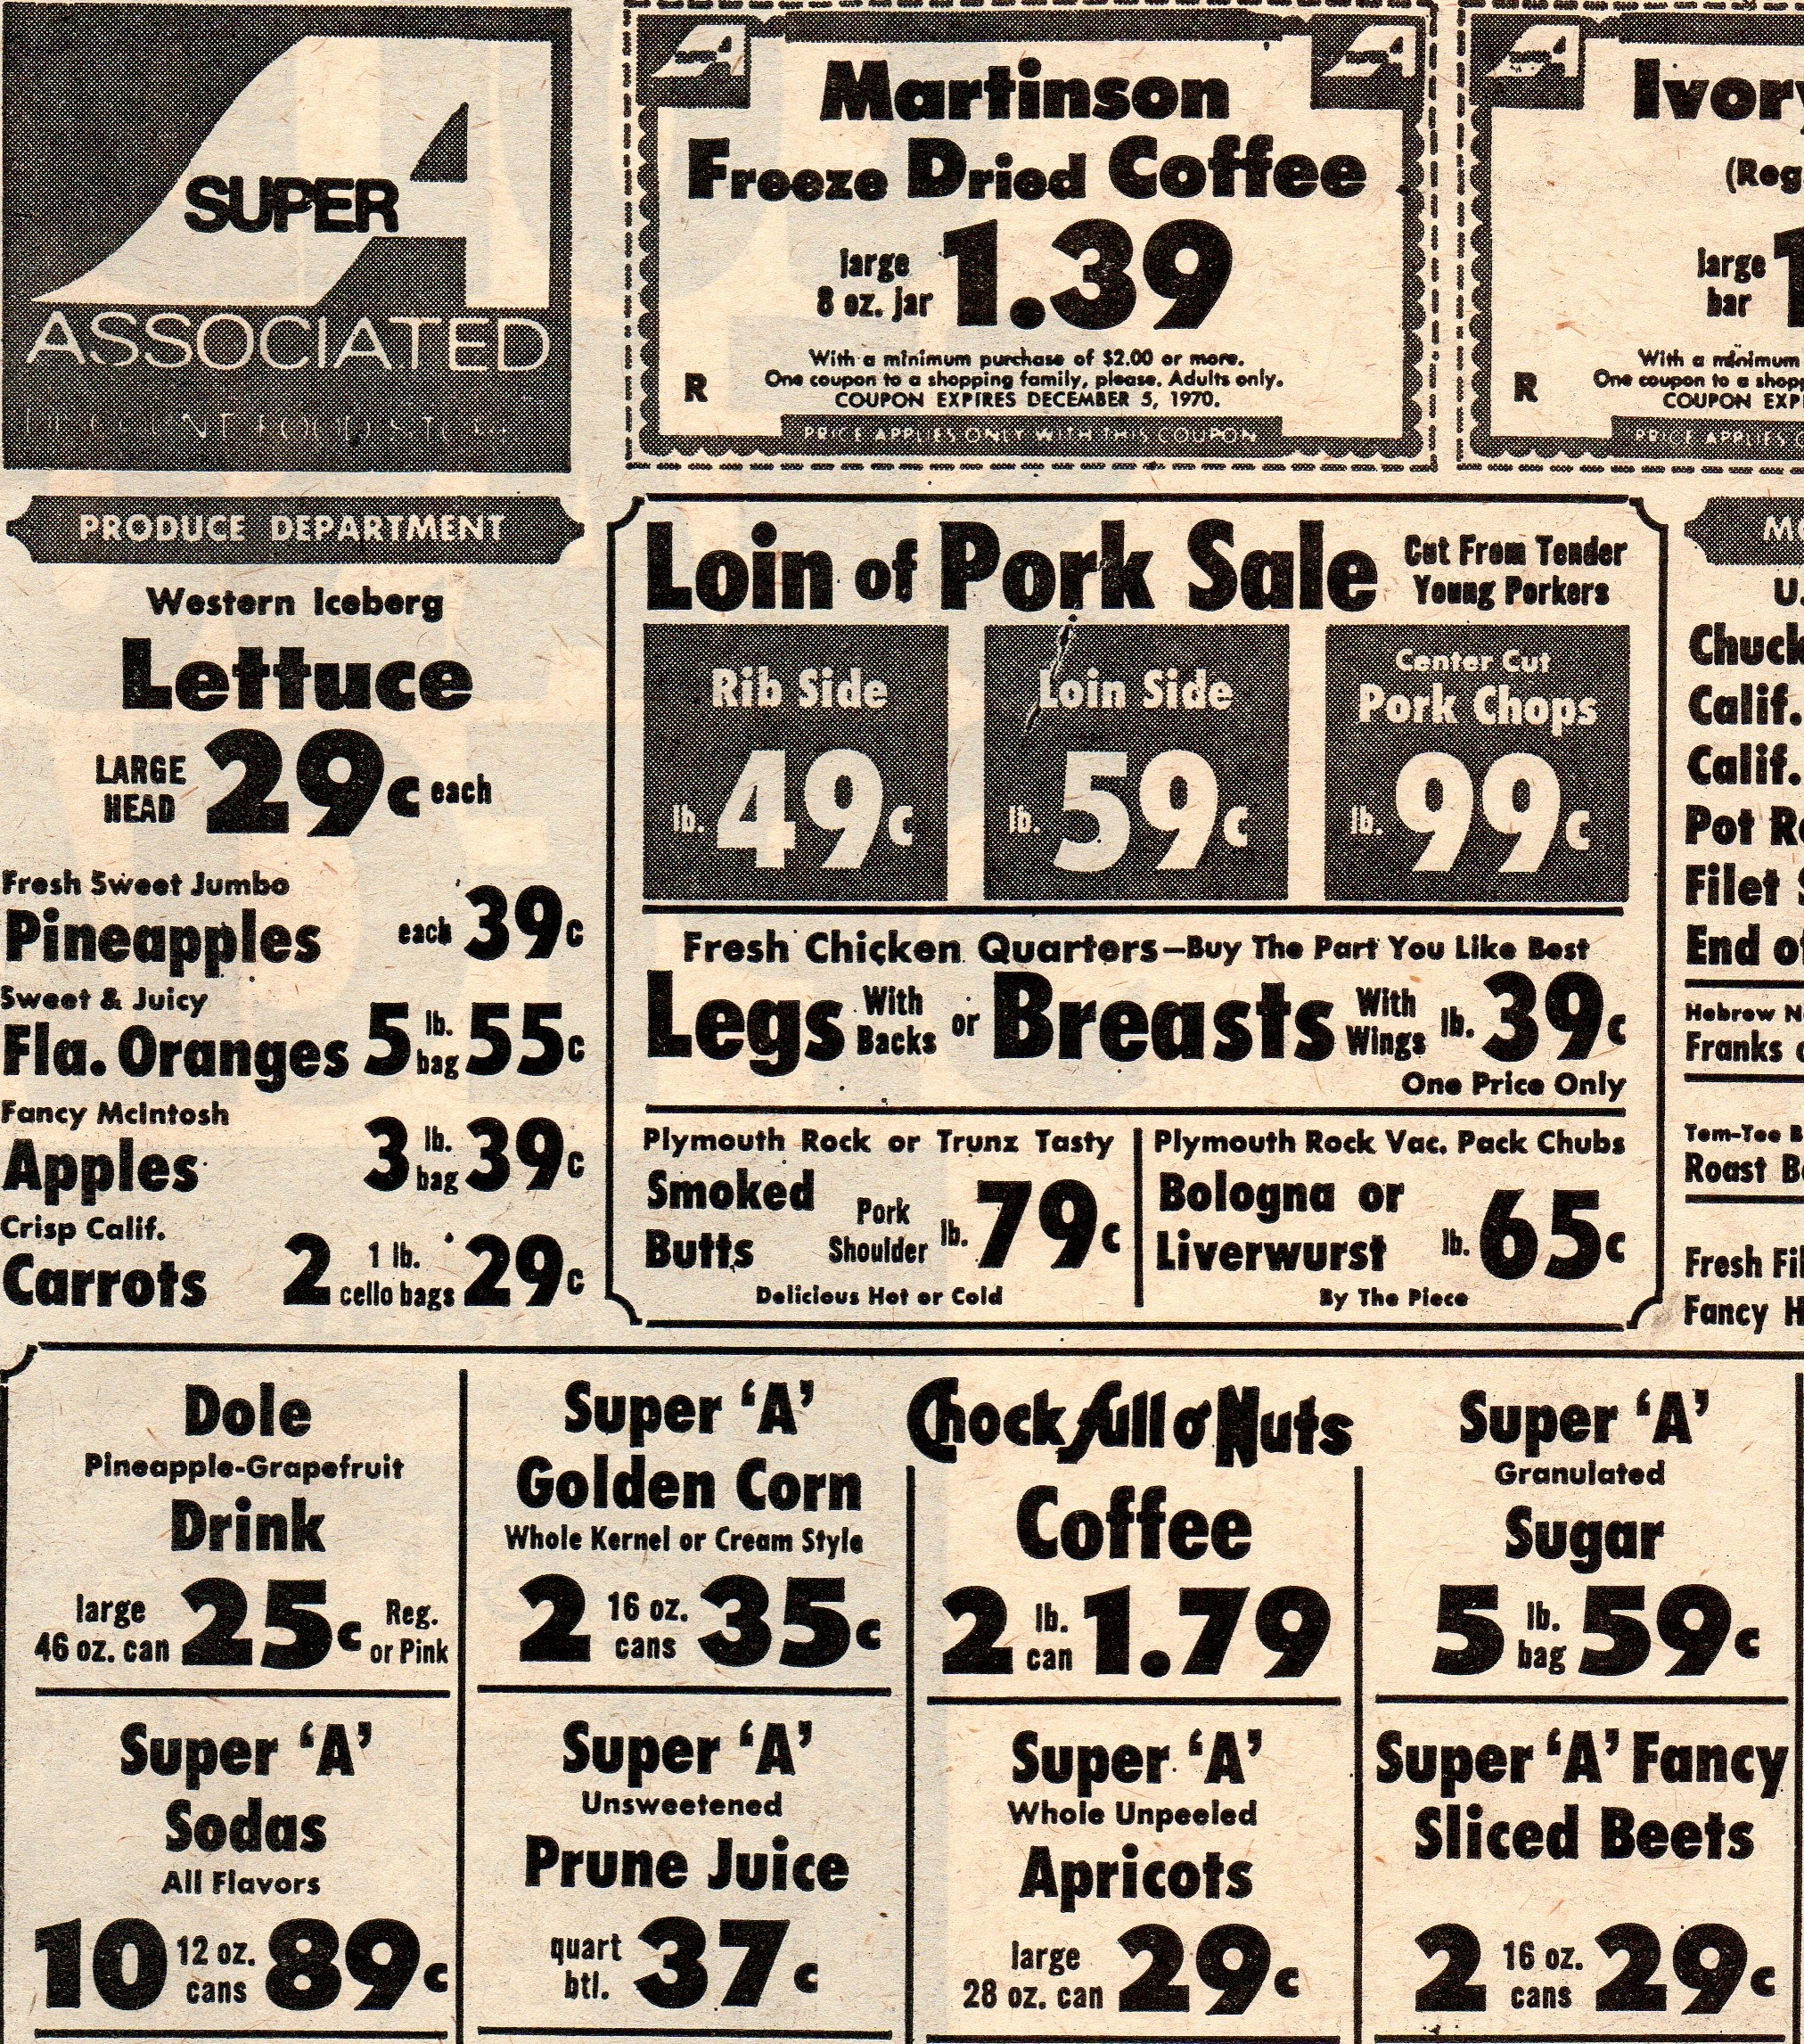 Retro Ice Cream Poster 720972 additionally Vintage Ads Fast Food Print Ads From The Past likewise Just Imagine These Old Household Products Containing Ddt On Your Shelves Today moreover Proddetail also Koolaid Skhs wikispaces. on 1950s food ads